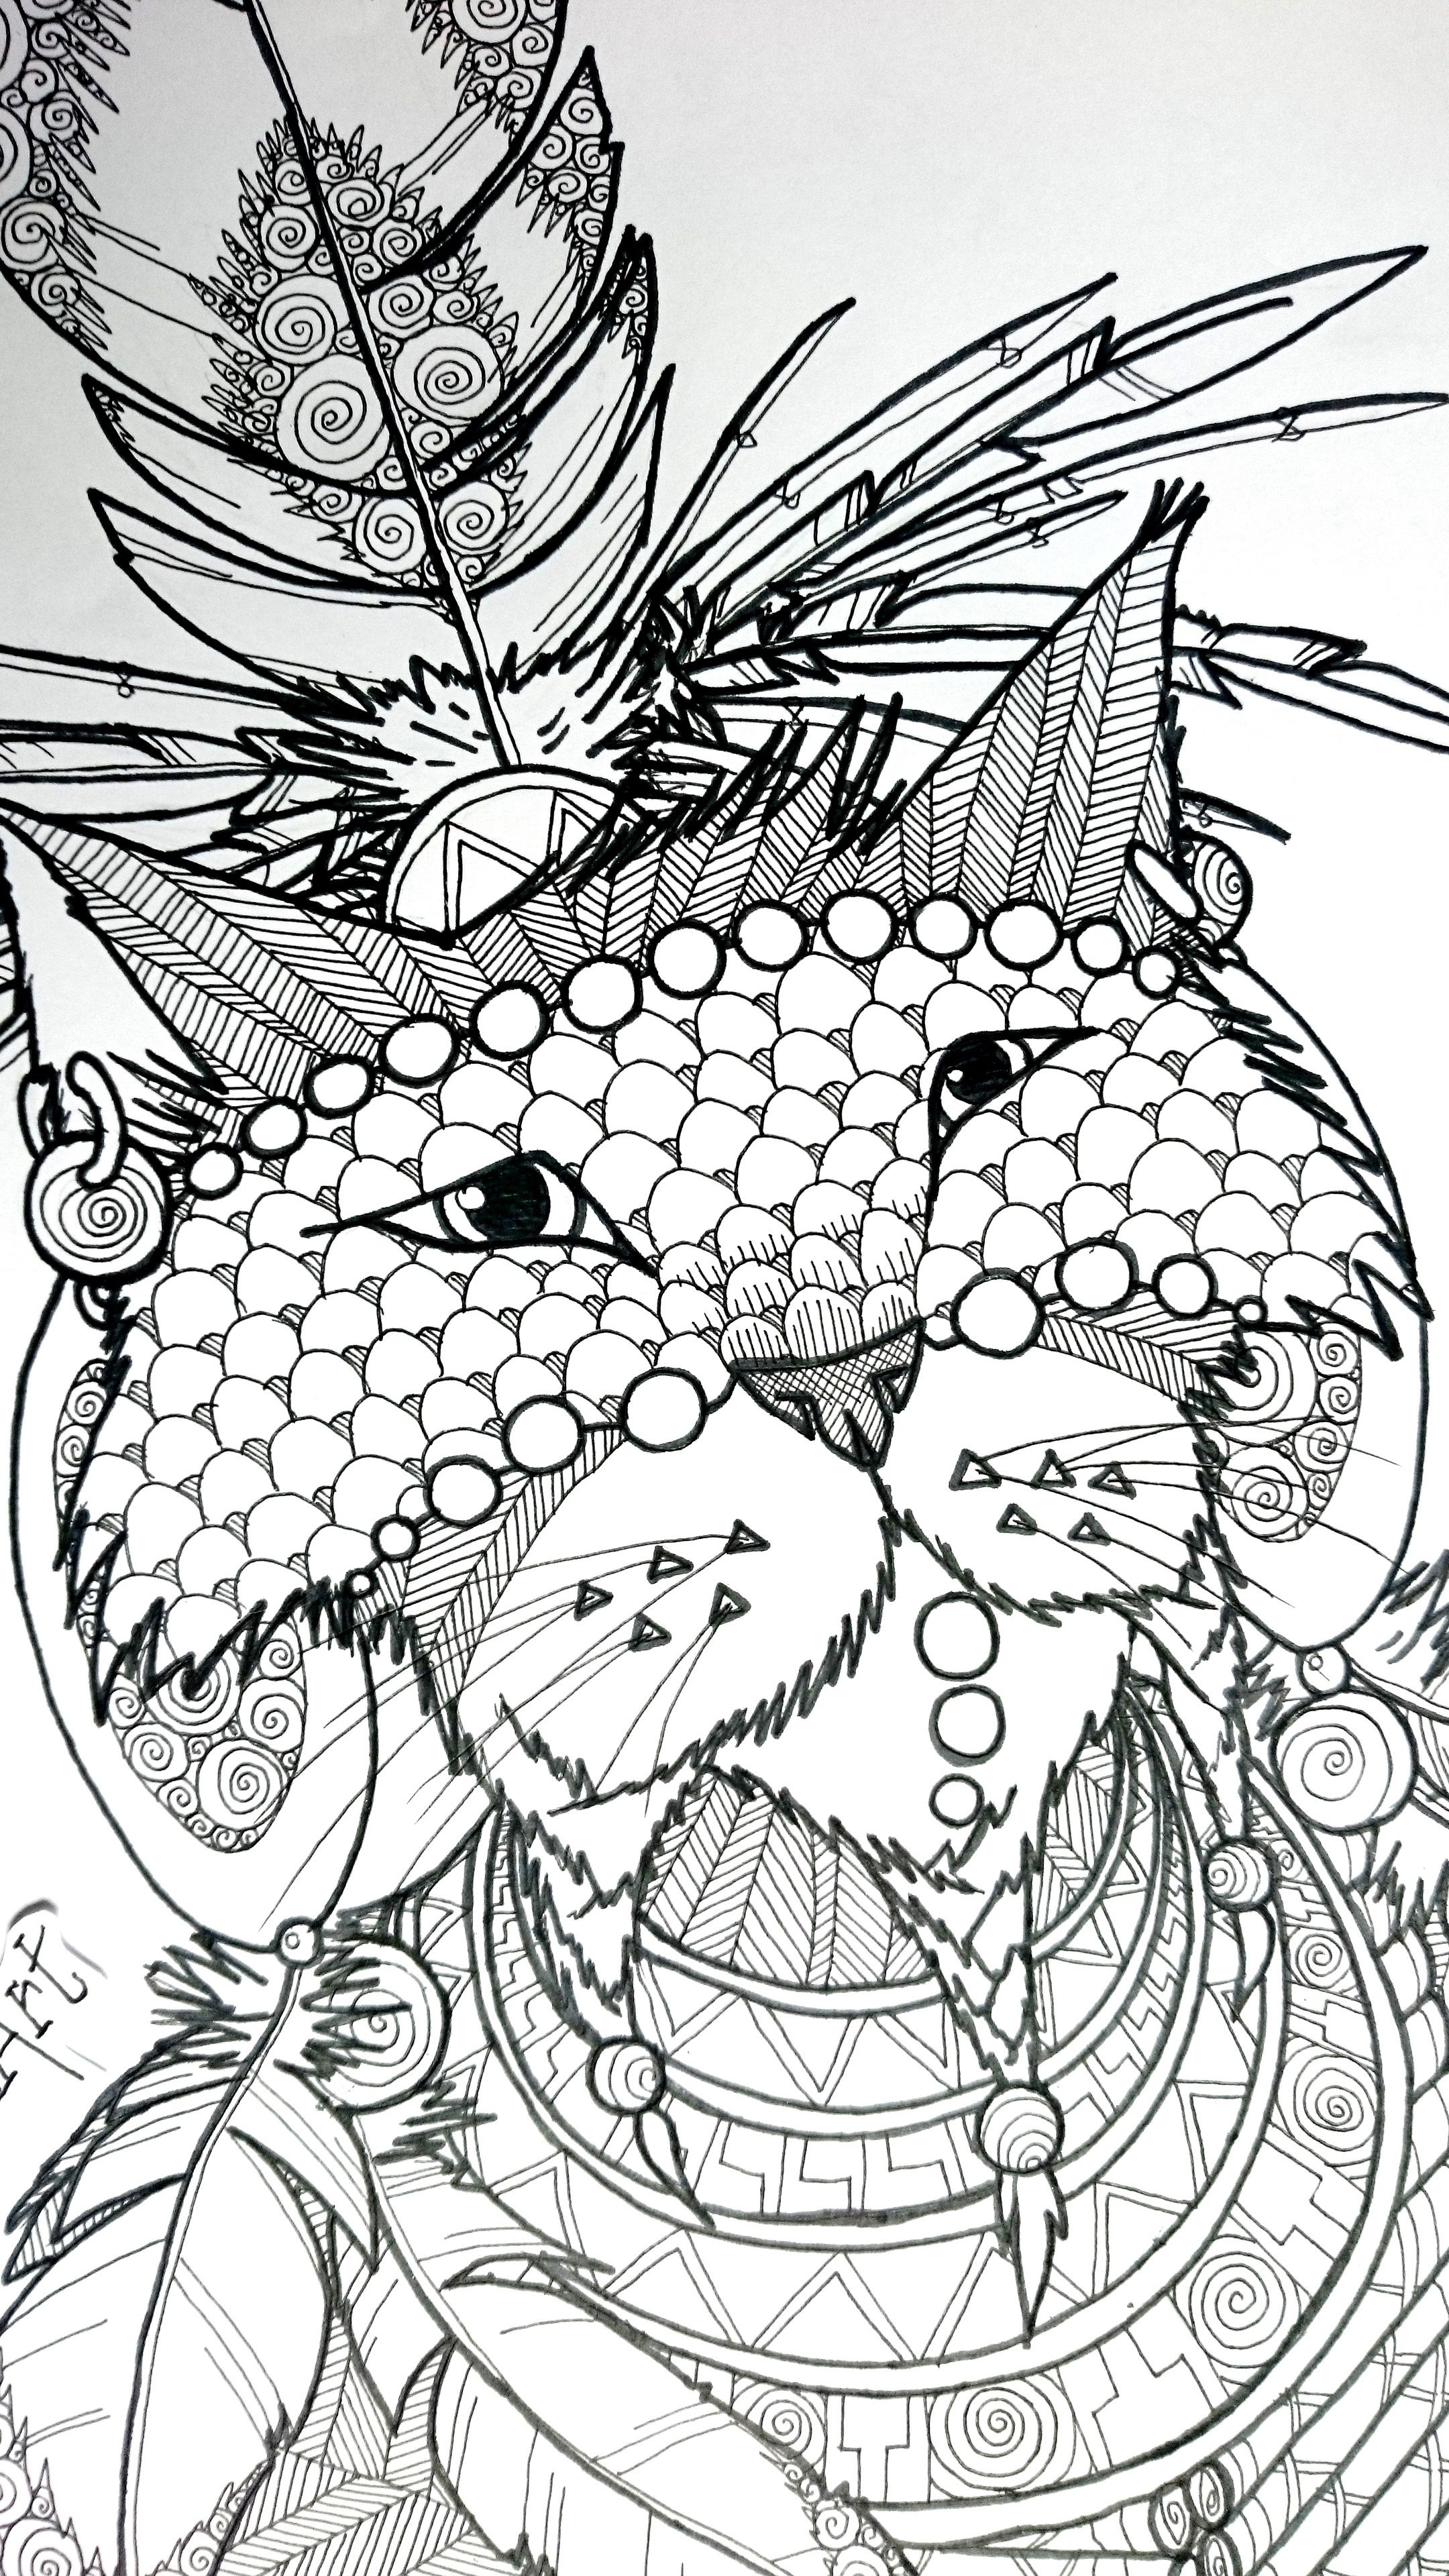 Check Out My Behance Project Duu Druid Undiscovered Tribe 2017 Https Www Behance Net Gallery 58875515 Duu Druid Coloring Pages Druid Fabric Painting